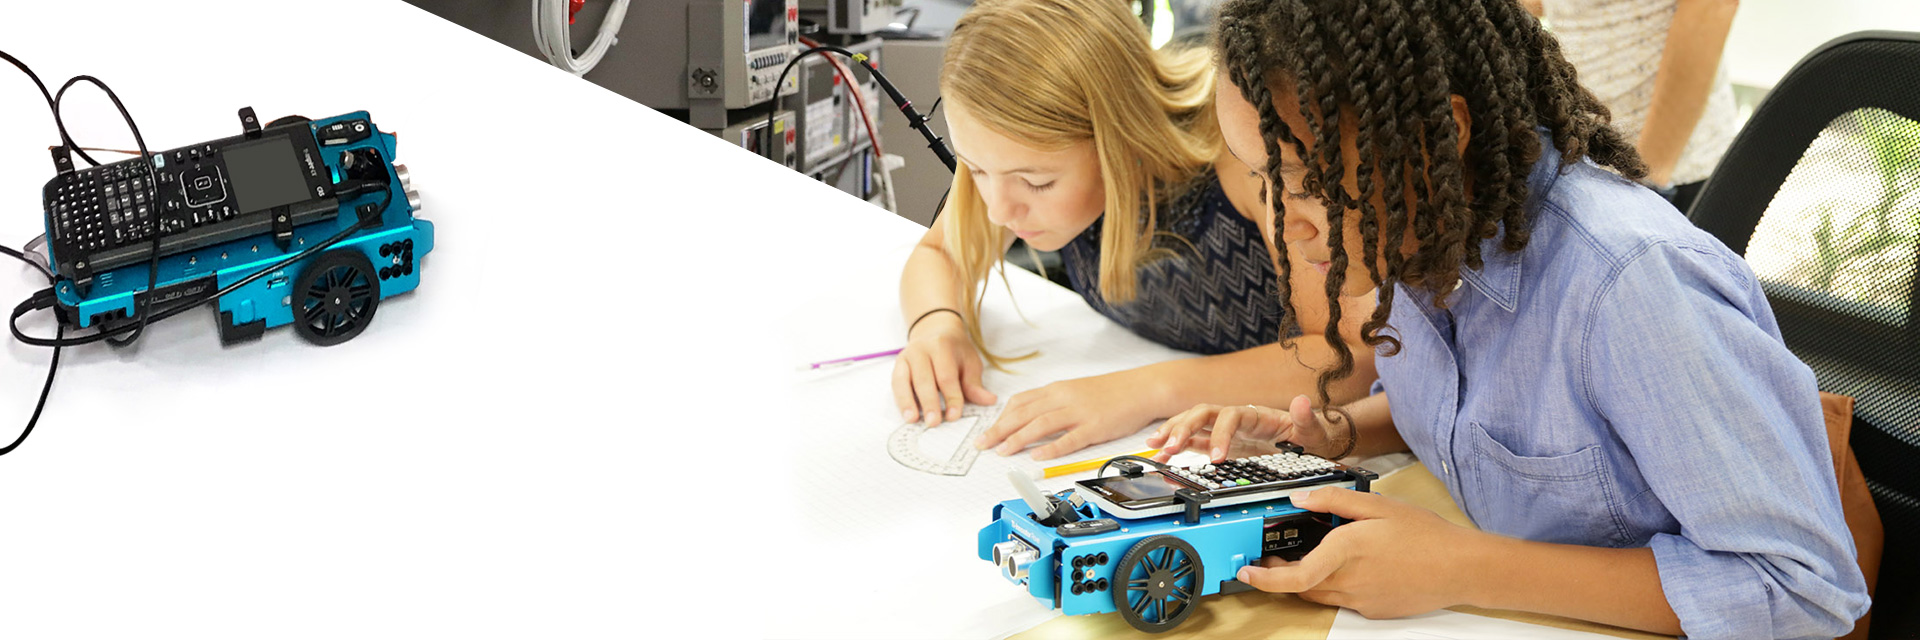 two students with TI rover